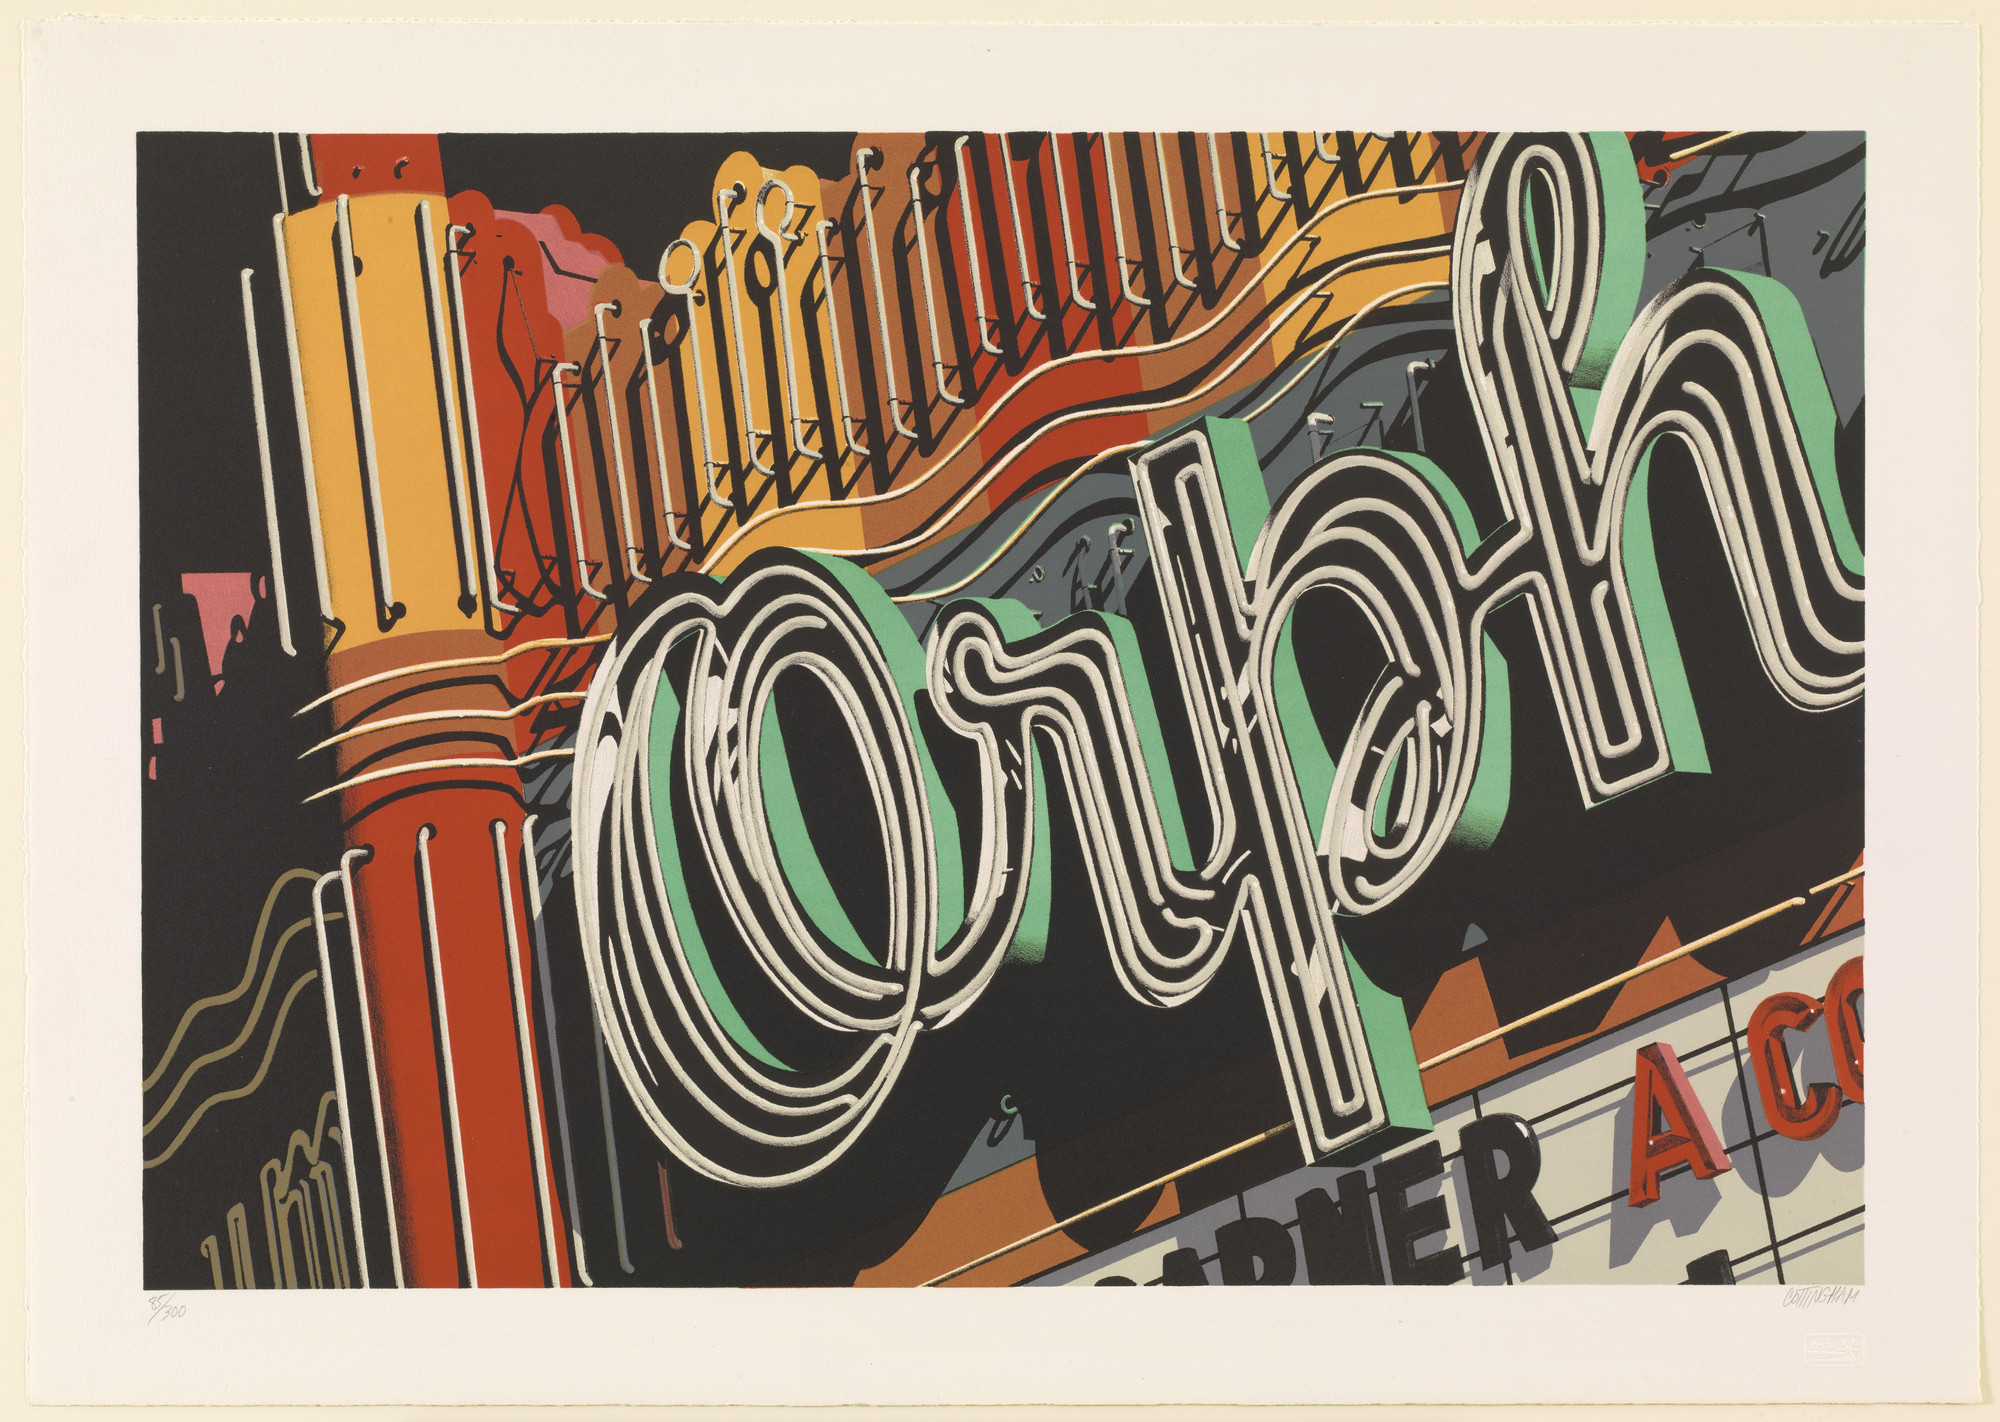 Robert Cottingham. Orph from Documenta: The Super Realists. 1972